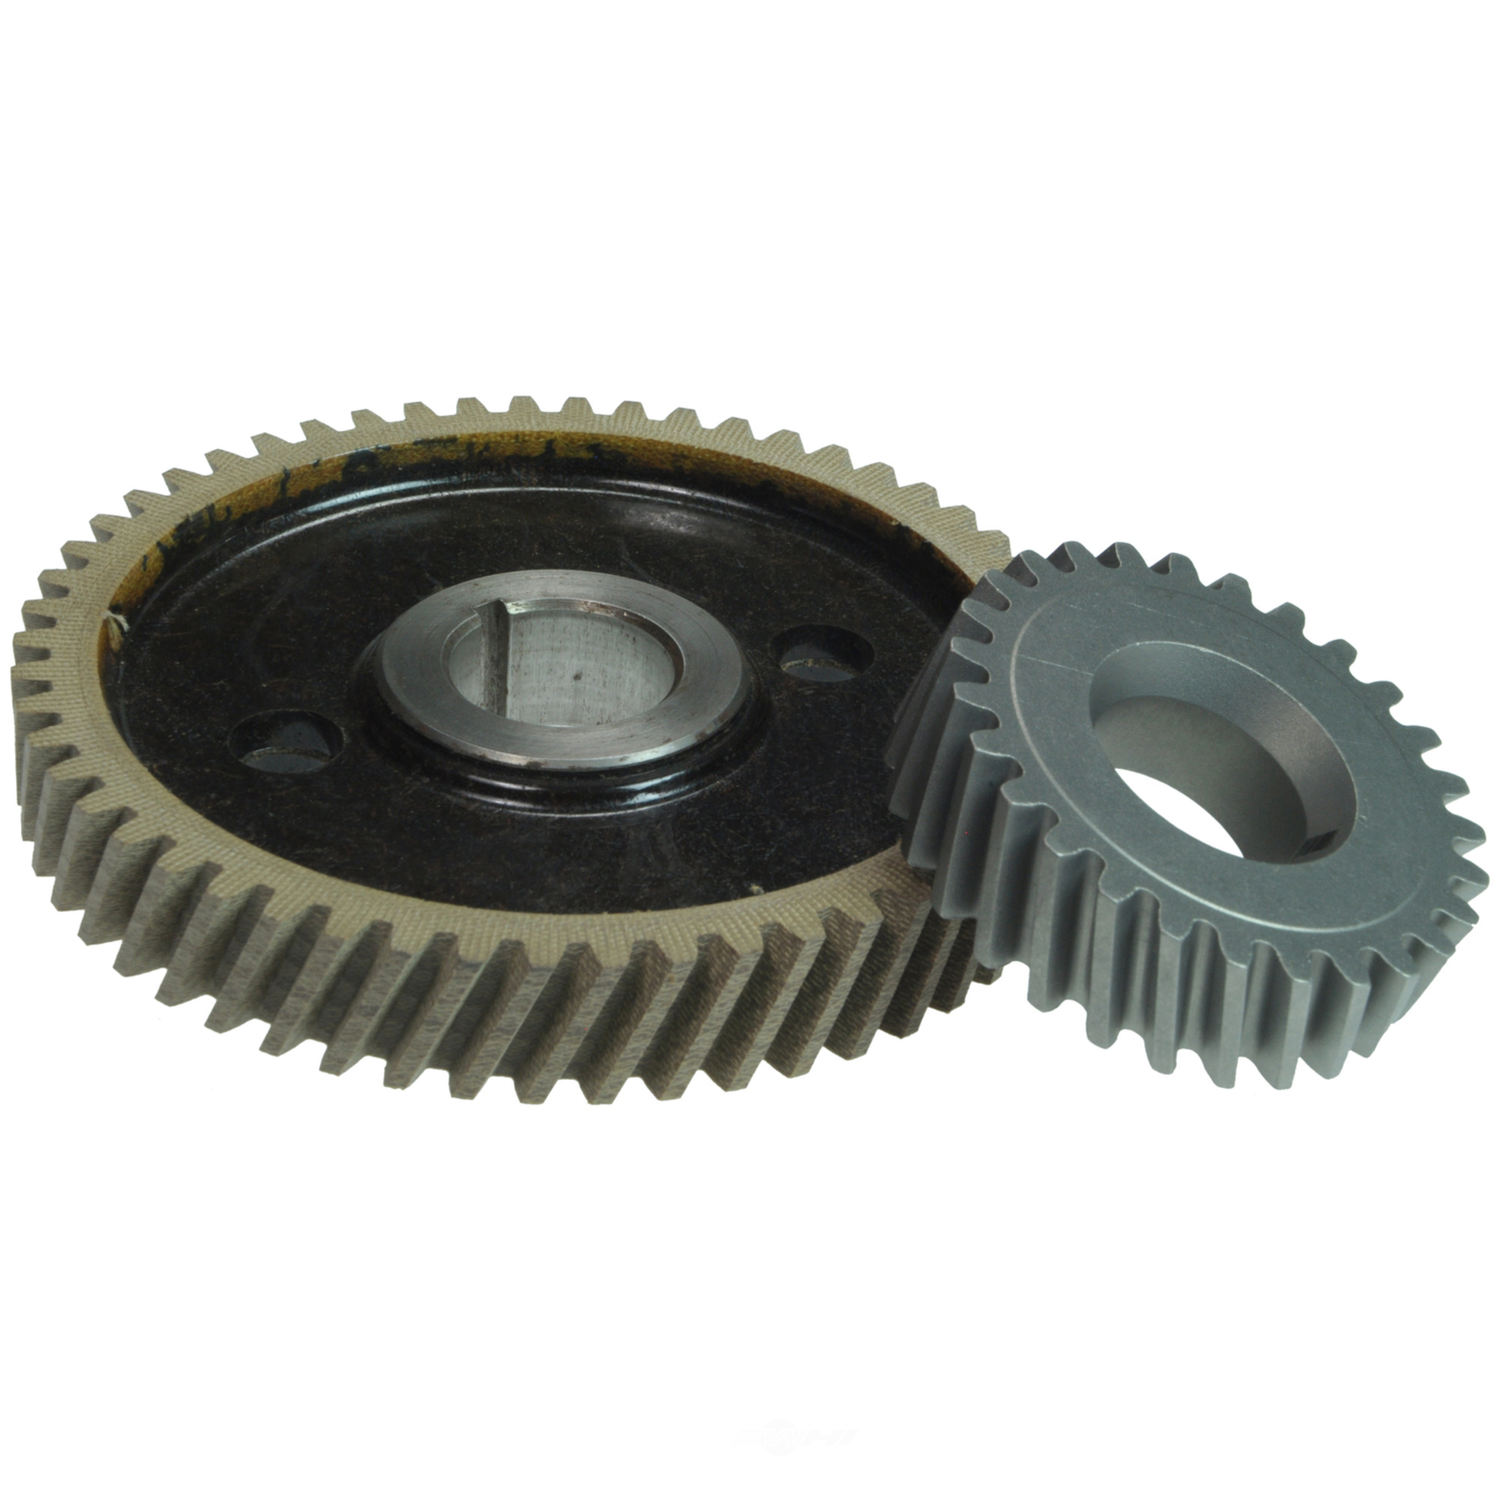 SEALED POWER - Engine Timing Gear Set - SEA 221-2542LS